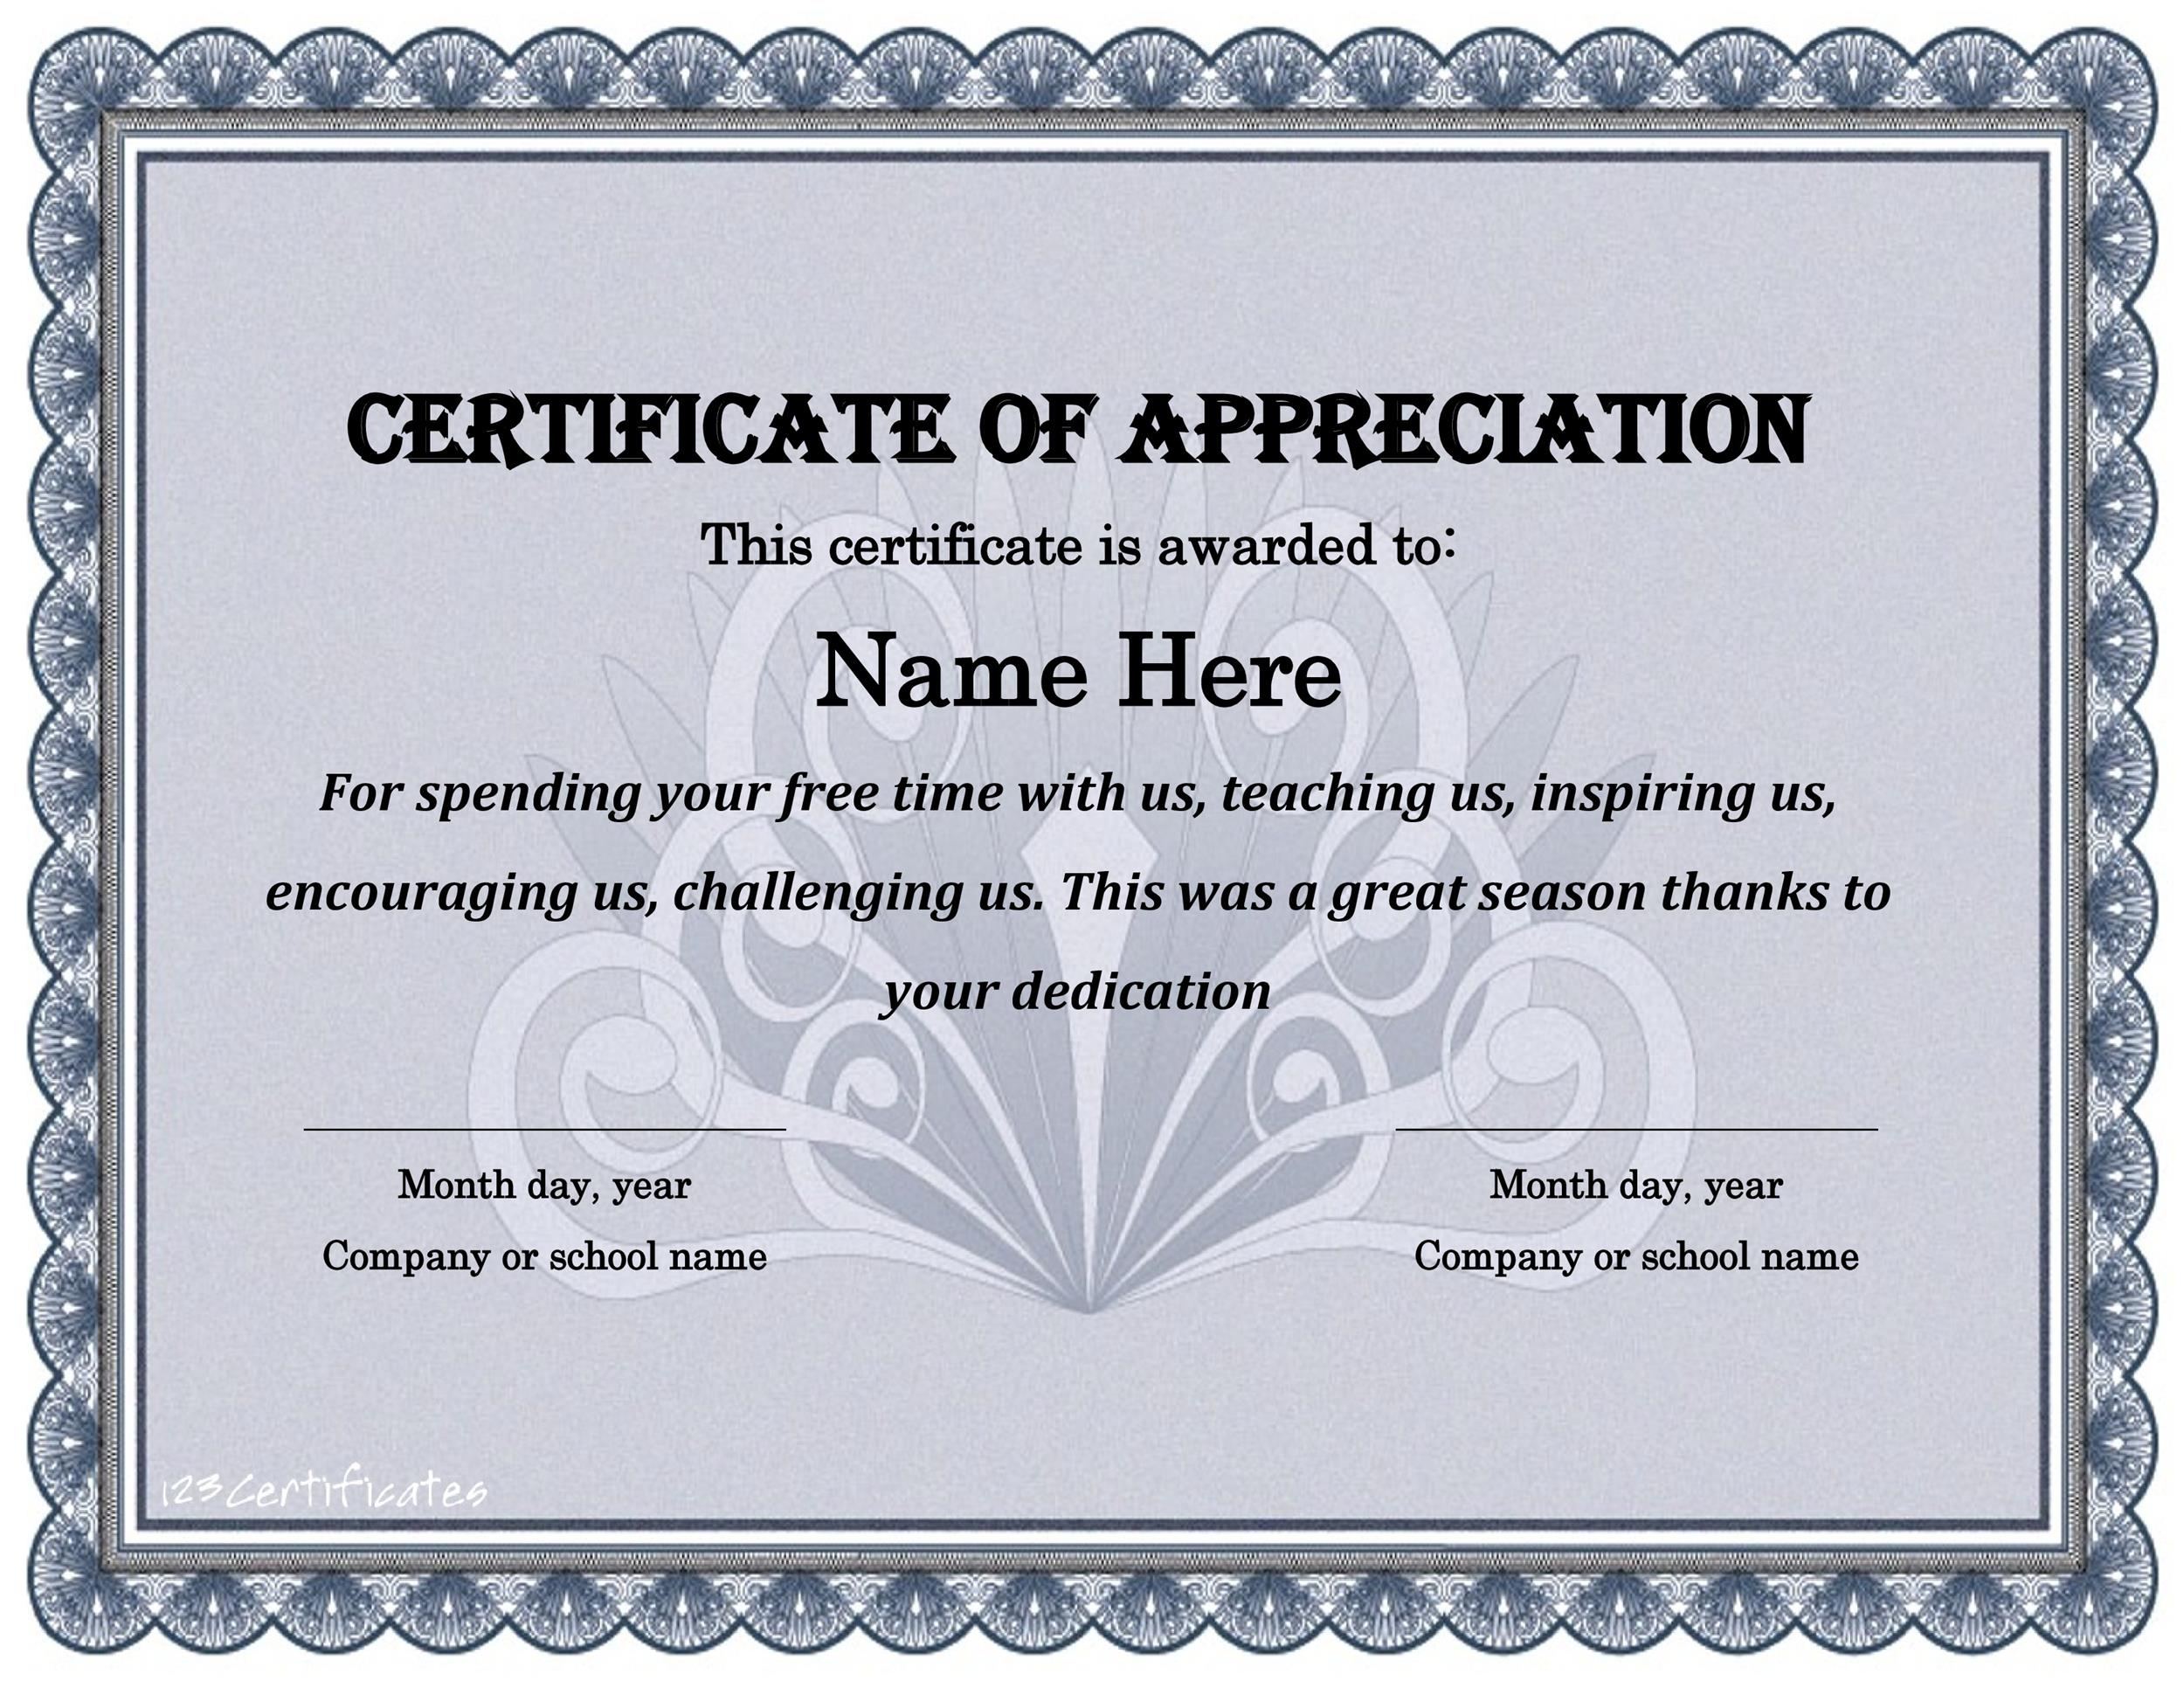 30 free certificate of appreciation templates and letters printable certificate of appreciation 21 yelopaper